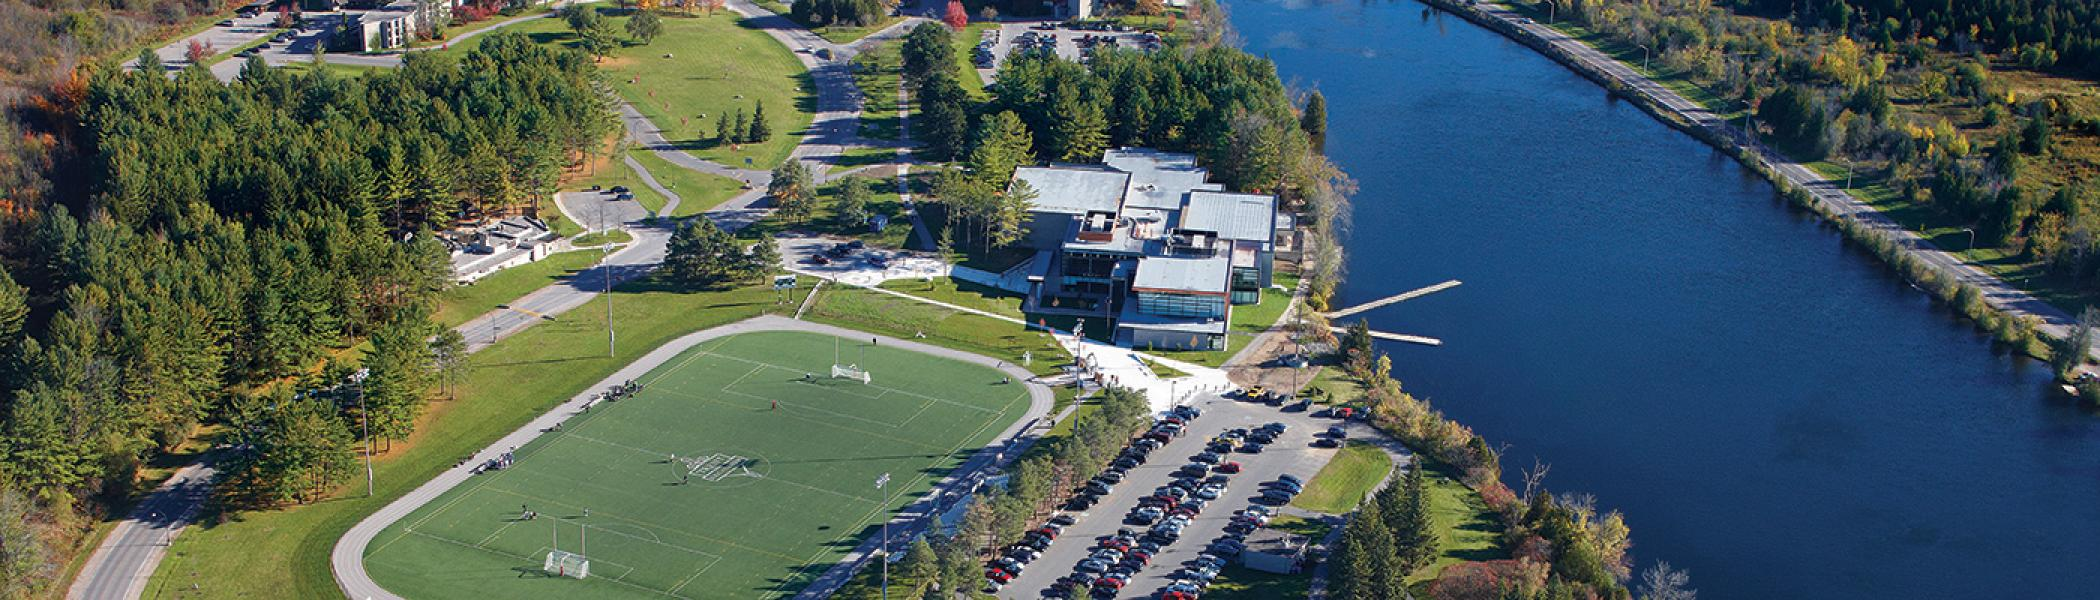 Aerial shot of Peterborough Campus